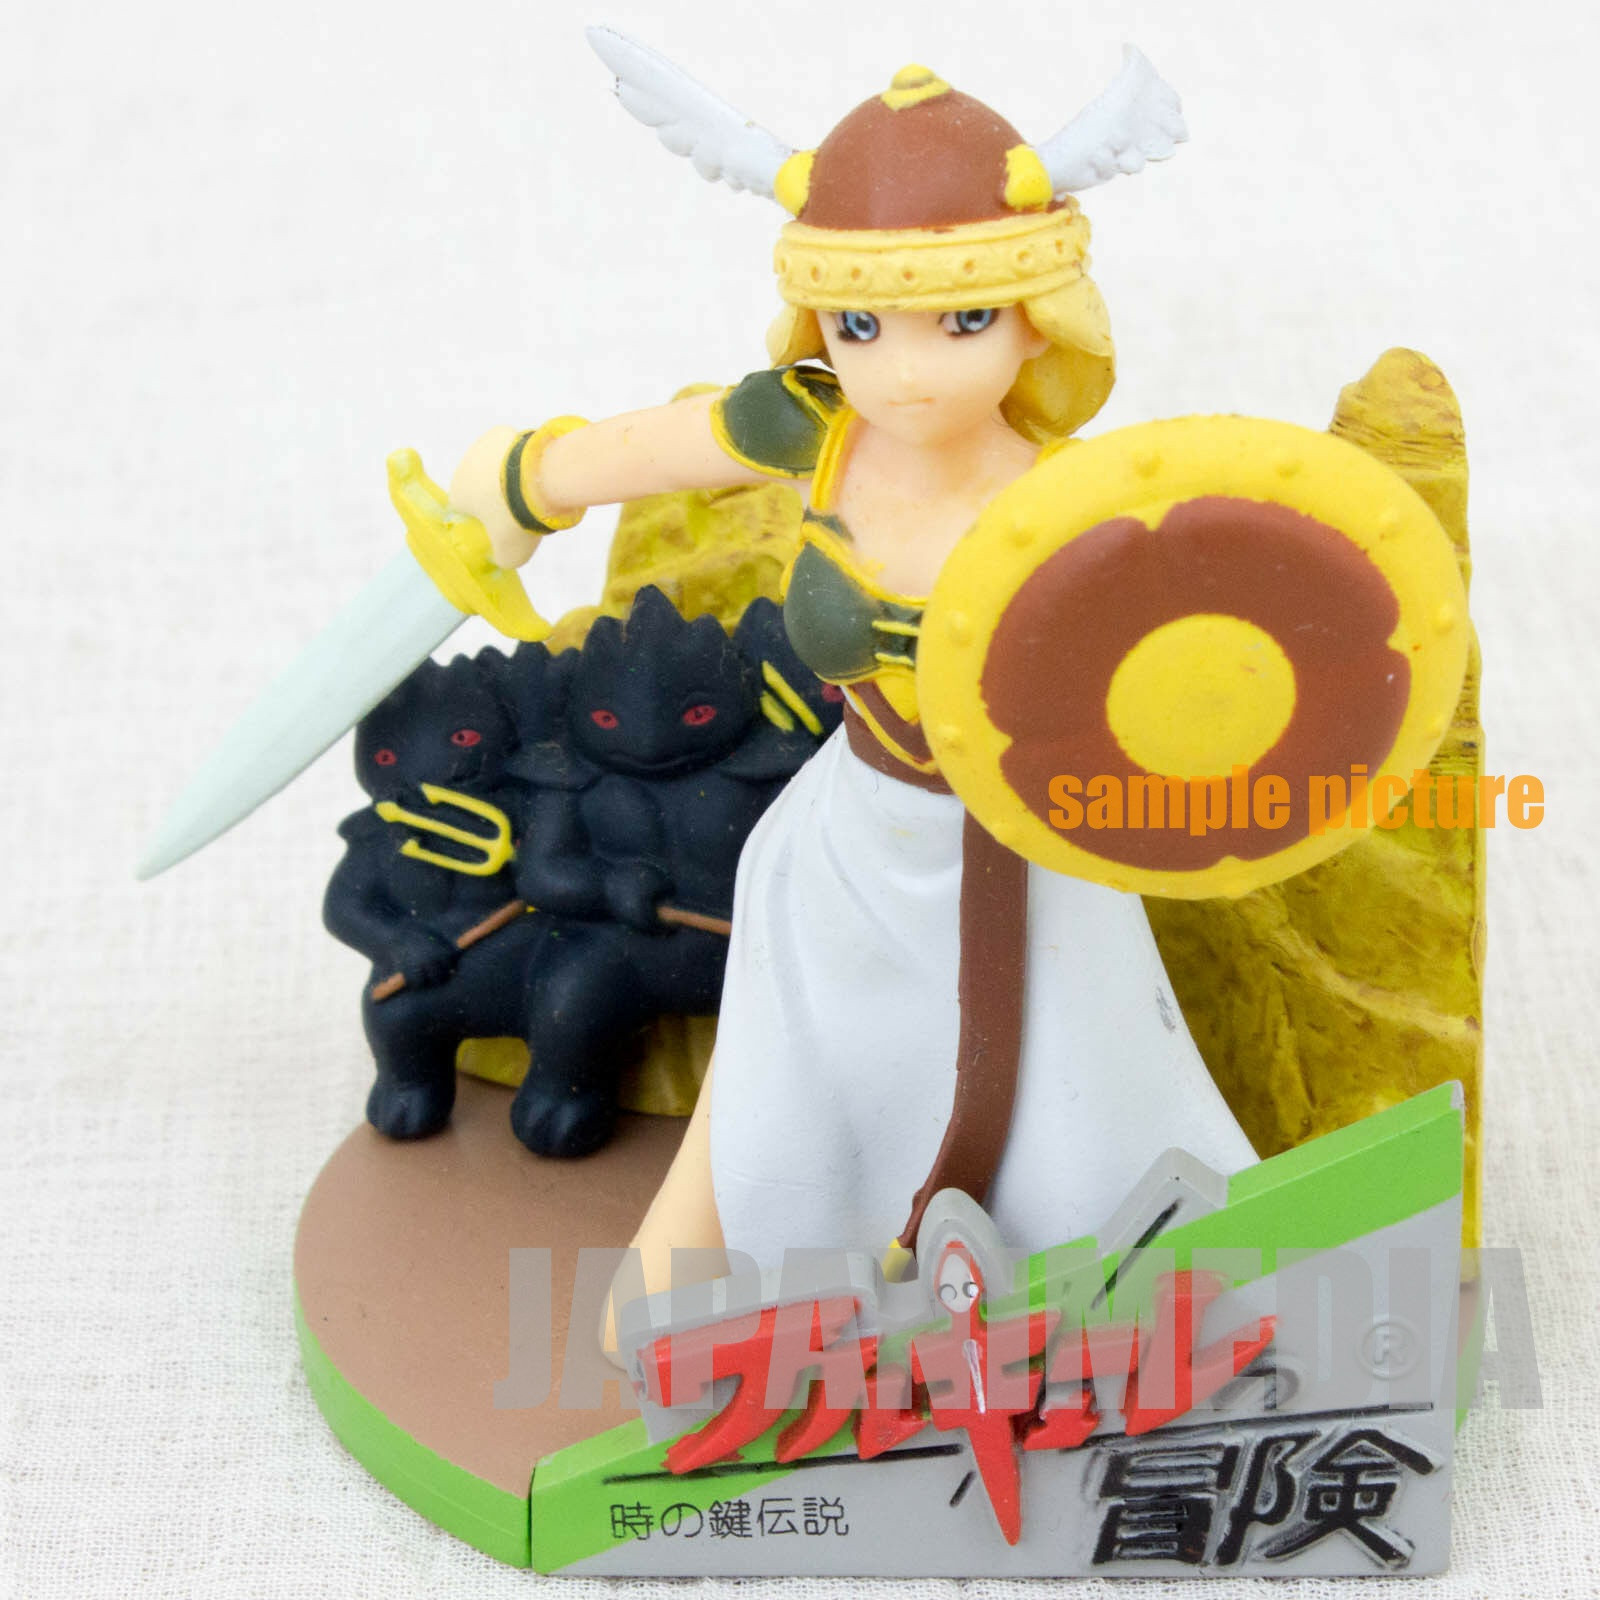 RARE! Namcole Valkyrie no Boken Package type Nam-colle Mini Figure Namco JAPAN NES FAMICOM